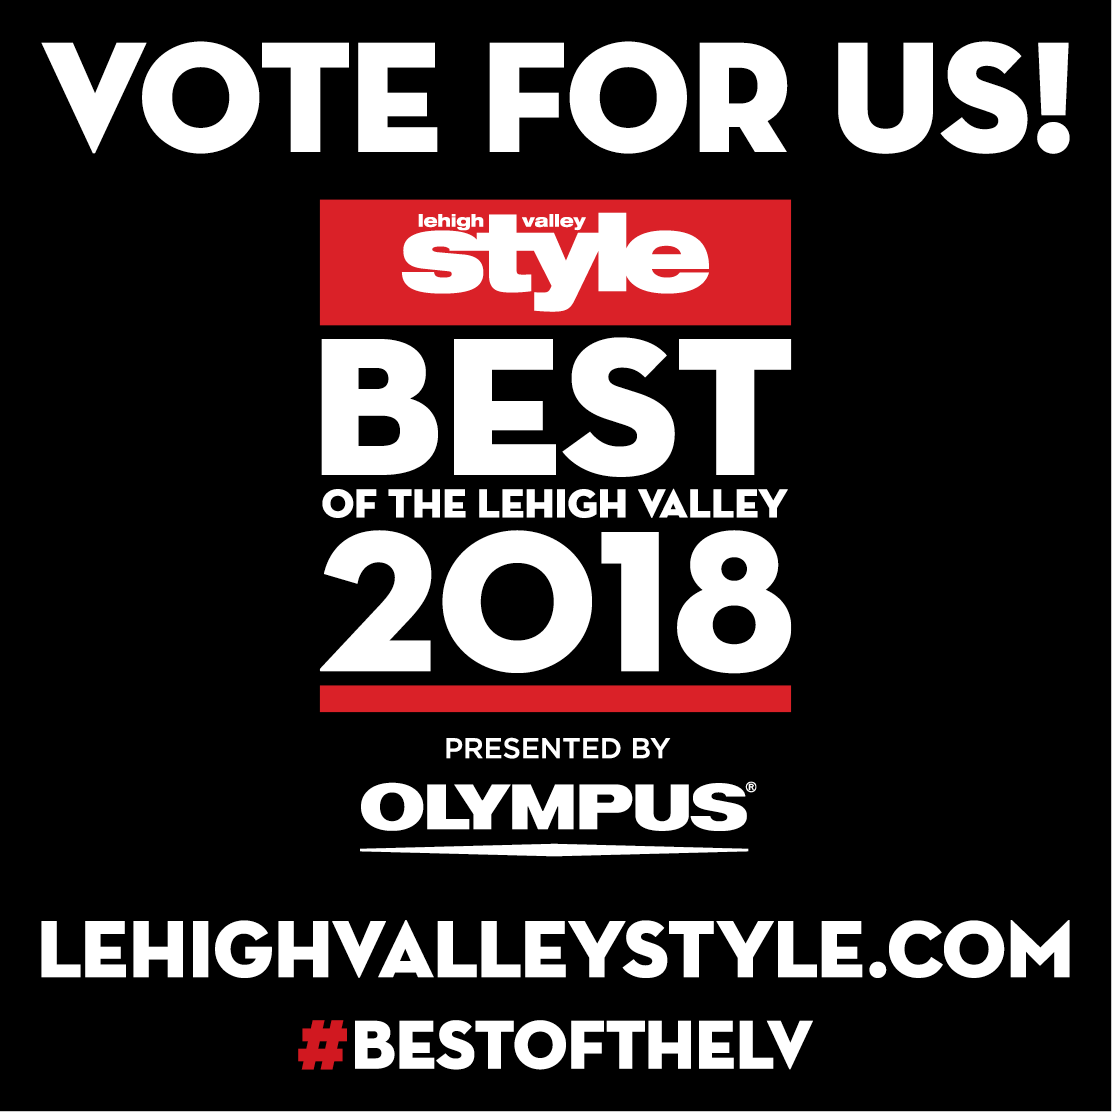 Best of the Lehigh Valley 2018